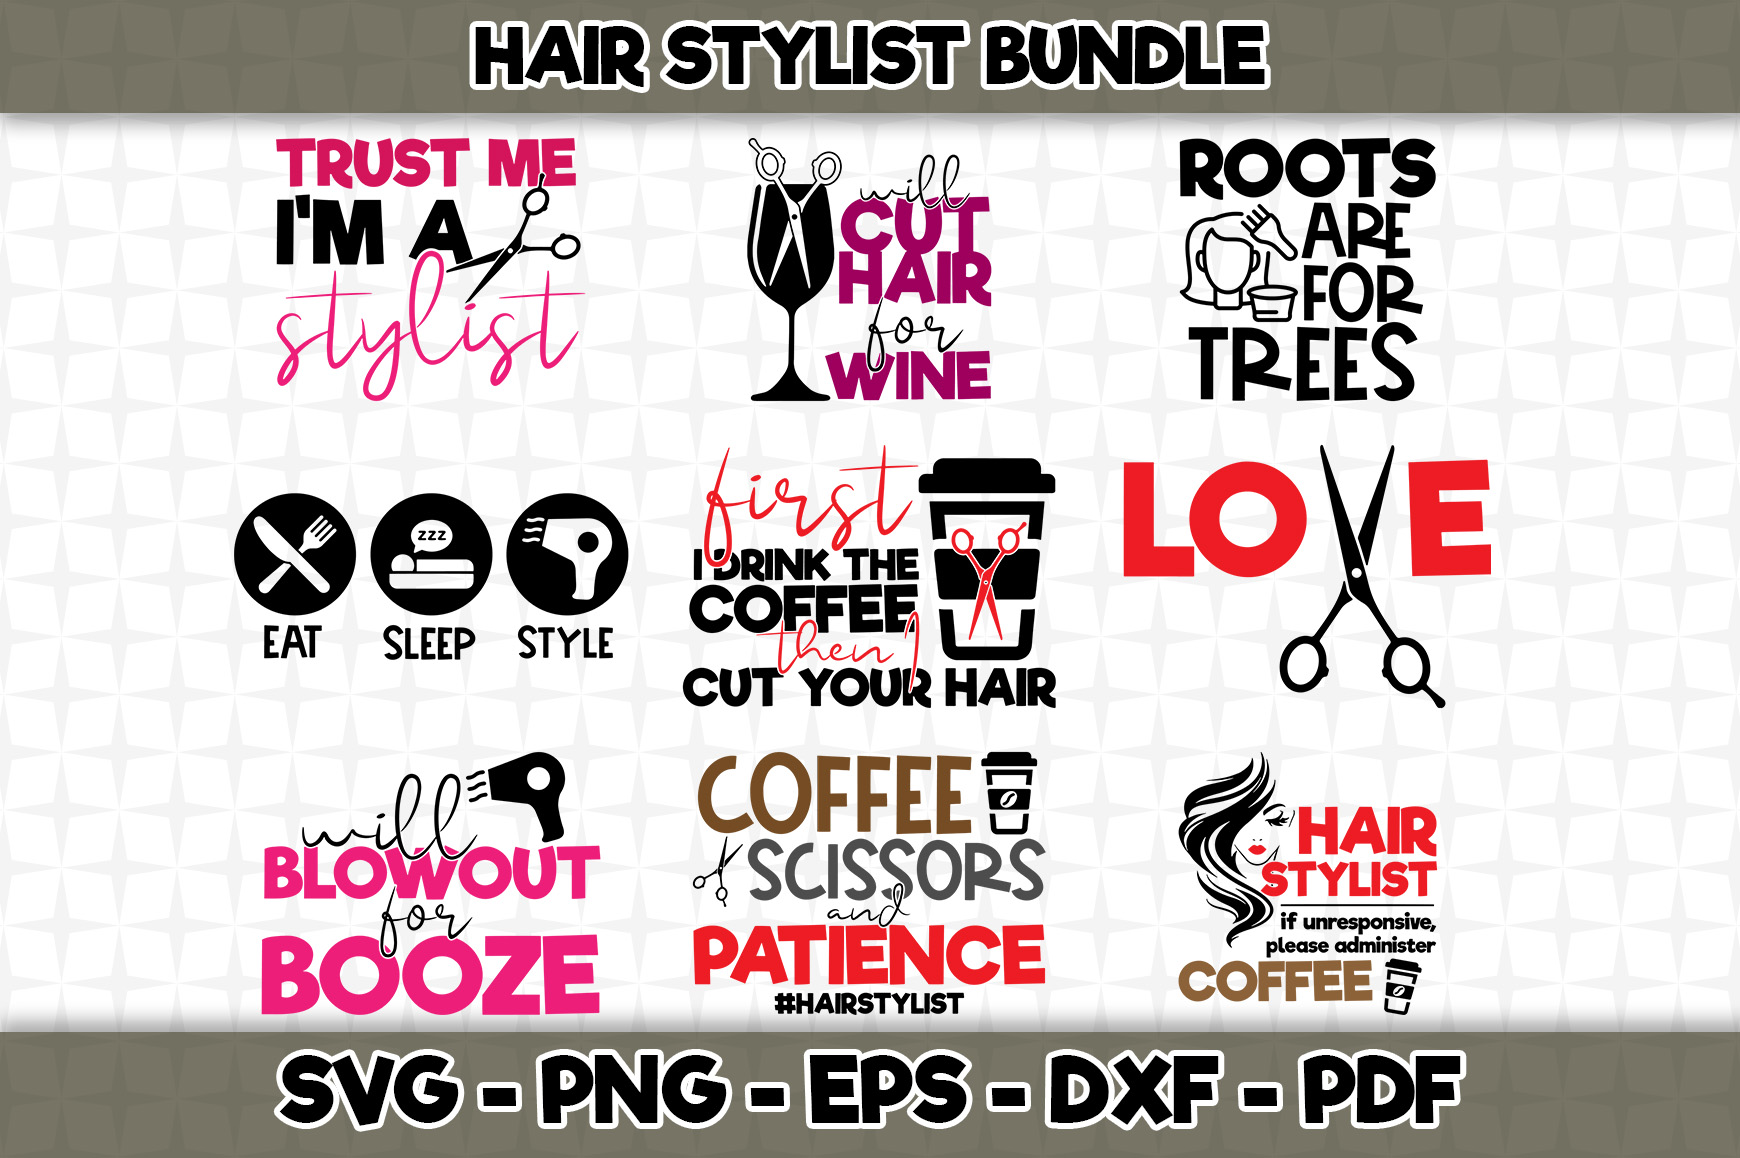 Download Free Hair Stylist Bundle 9 Designs Included Graphic By Svgexpress Creative Fabrica for Cricut Explore, Silhouette and other cutting machines.